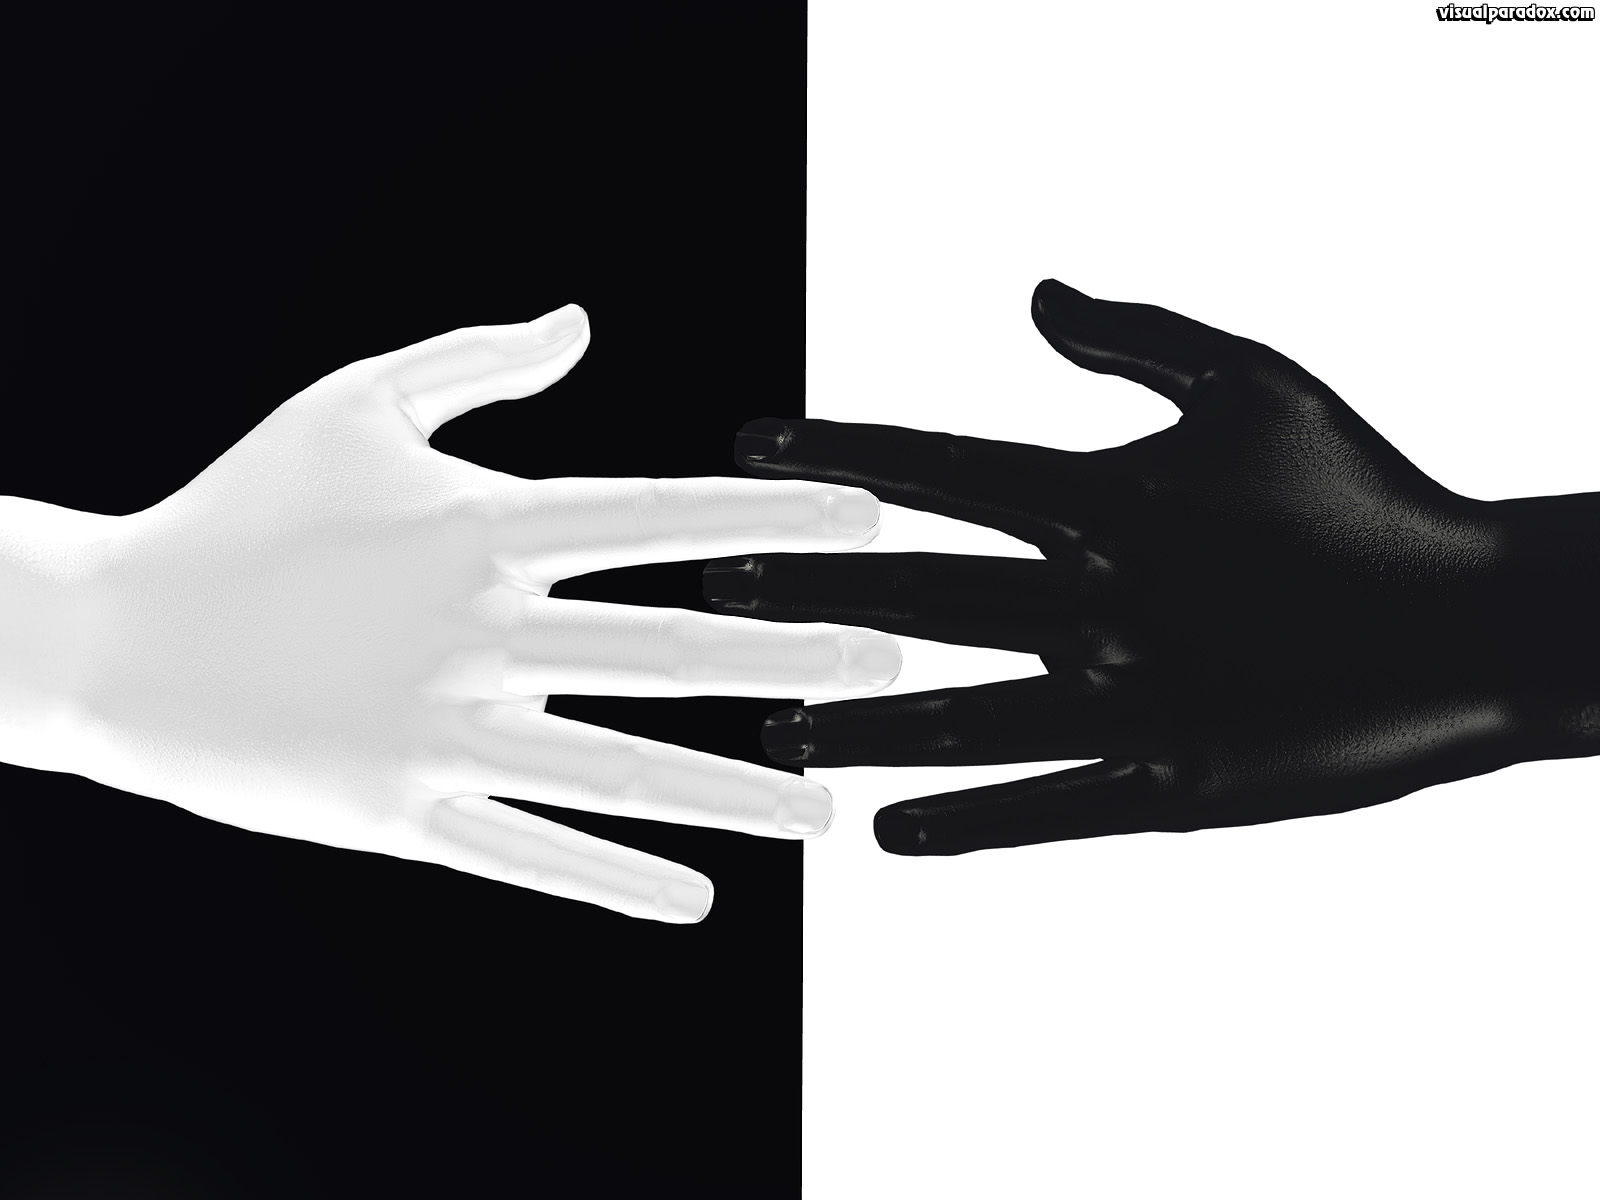 Free 3d wallpaper 39 ten fingers 39 1600x1200 for Black and white 3d wallpaper